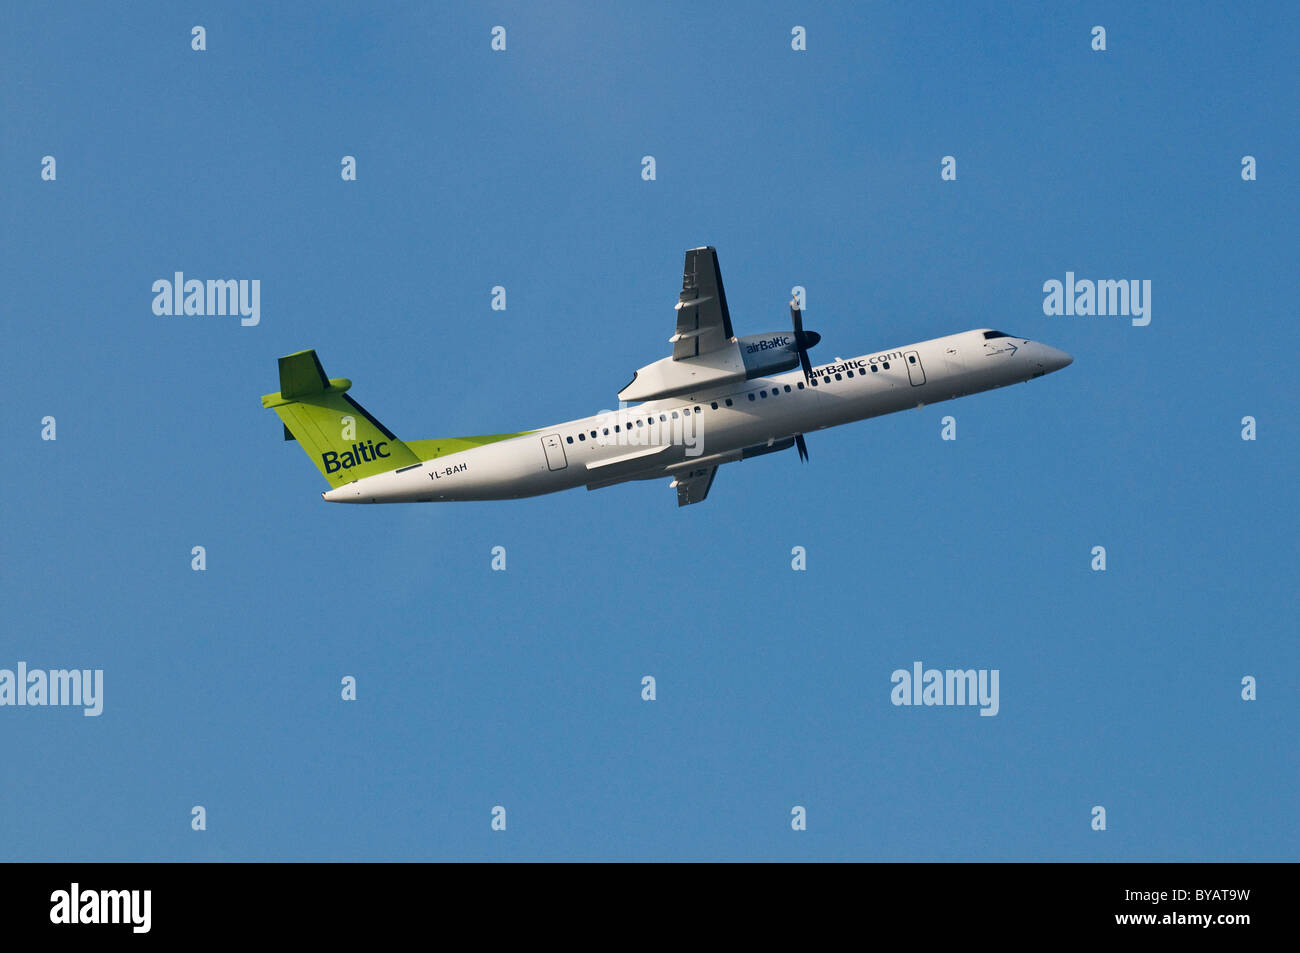 Baltic Air De Havilland Canada, Propellerflugzeug Klettern Stockbild